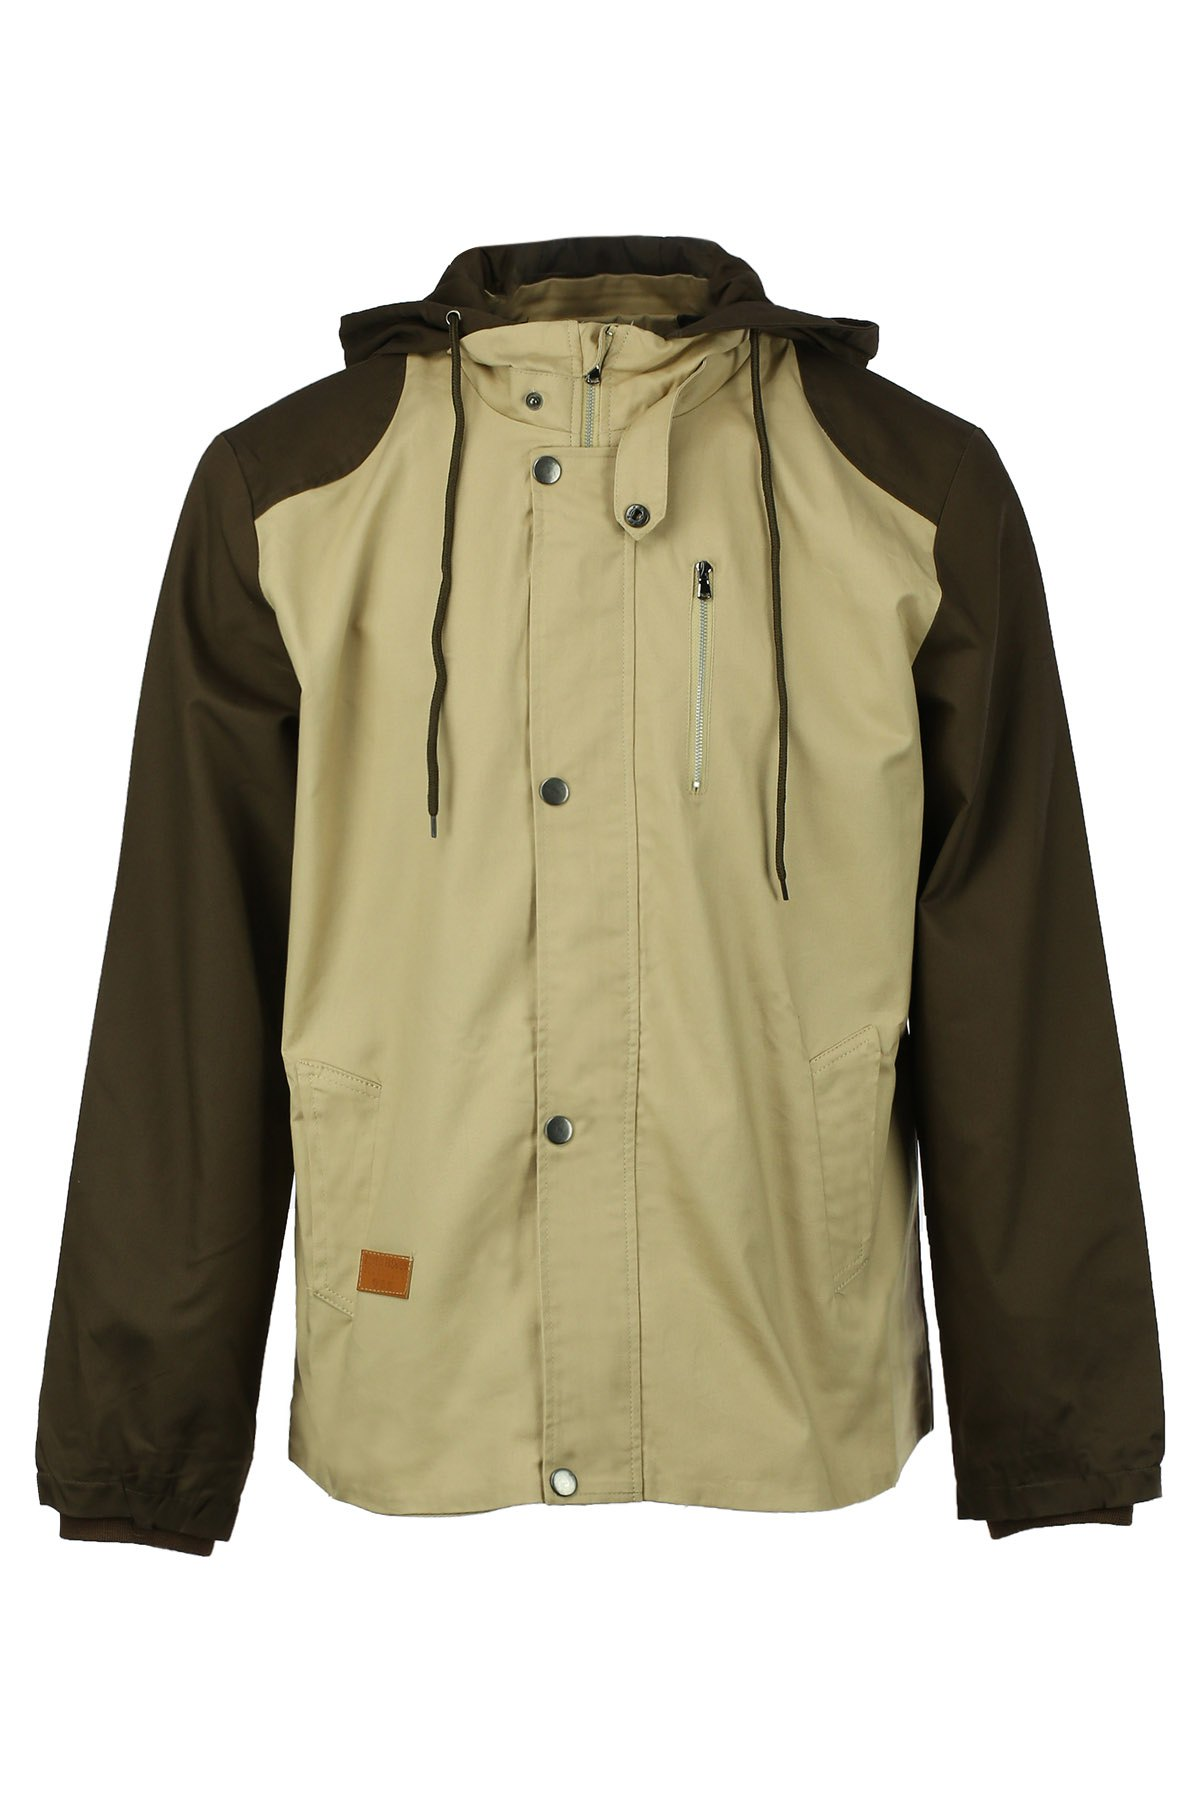 Classic Color Spliced Zipper and PU Leather Design Slimming Hooded Long Sleeves Men's Jacket - KHAKI 2XL